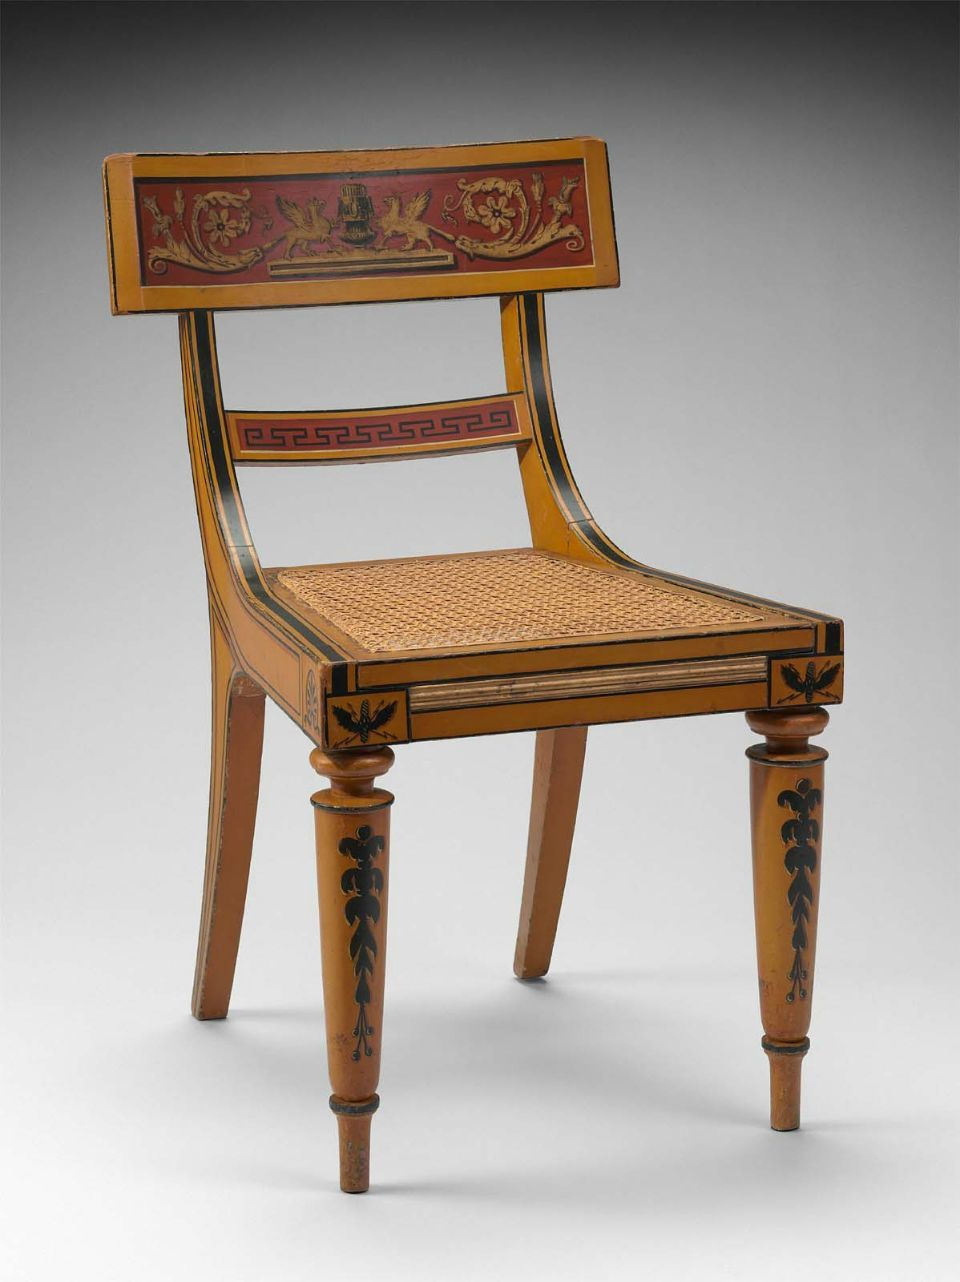 Side chair about 1815 Baltimore, Maryland, United States - Side Chair About 1815 Baltimore, Maryland, United States 1800s